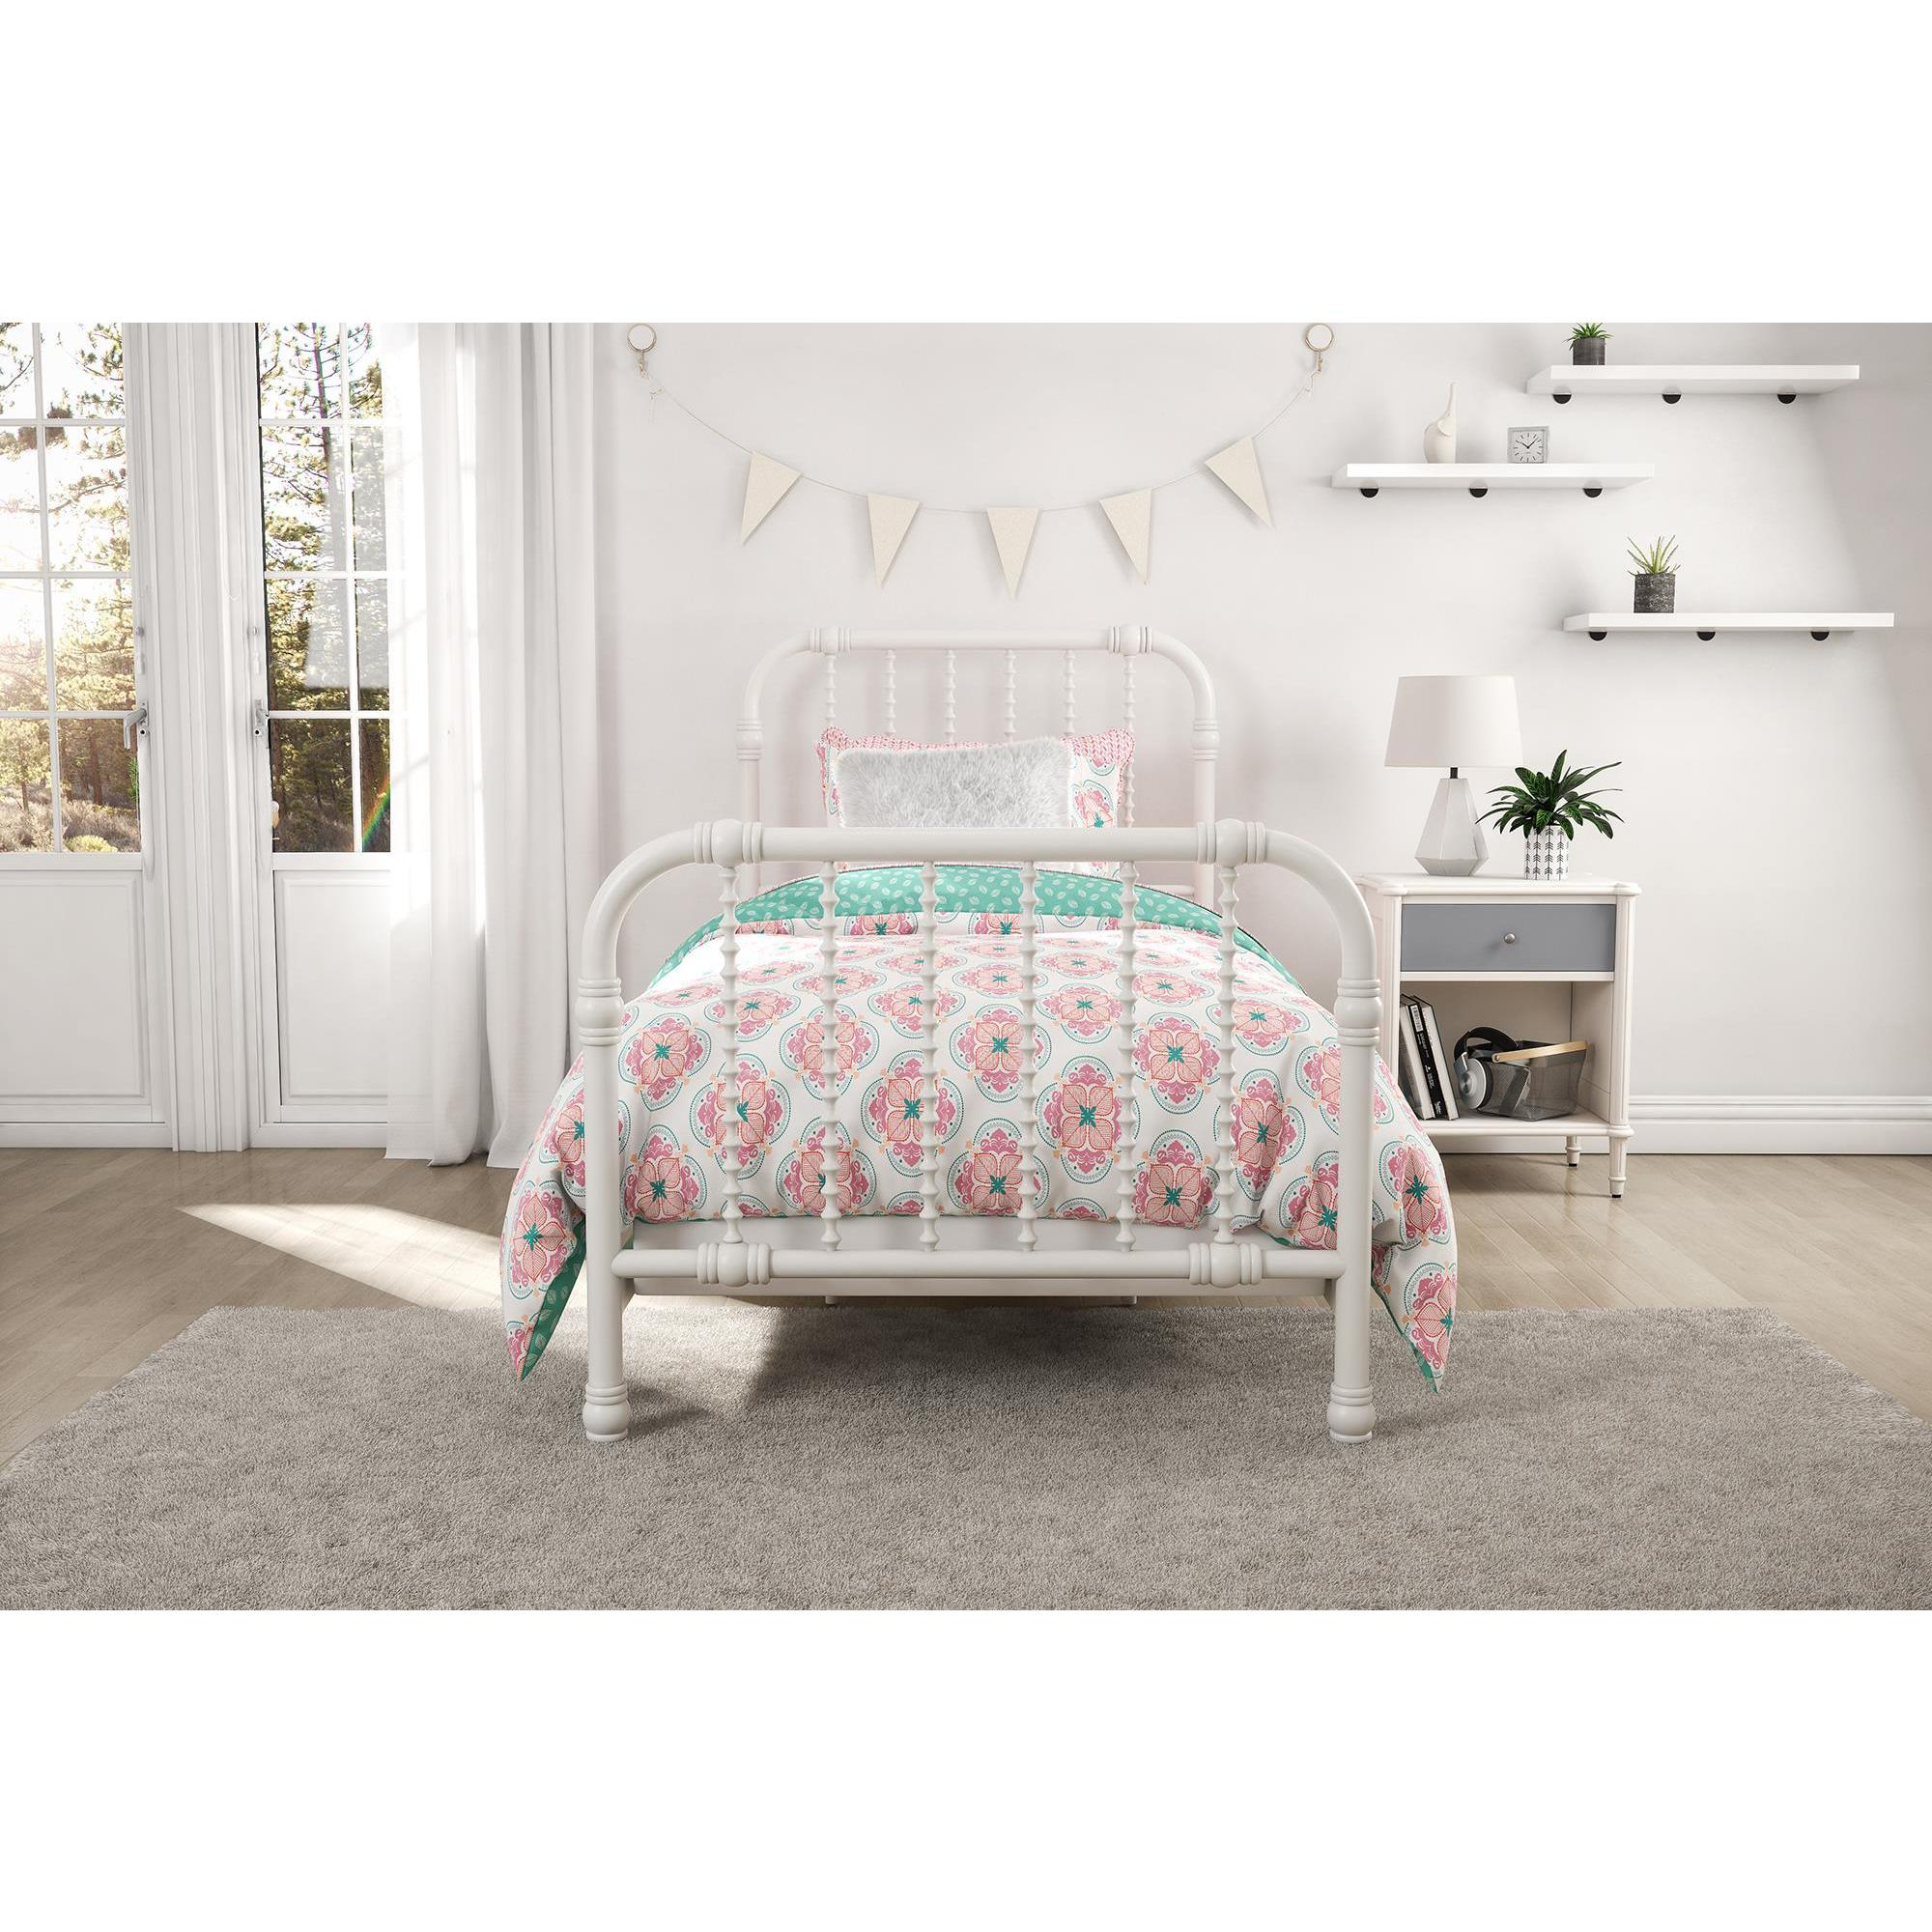 Little Seeds Cora 7 Piece Bed In A Bag Set   Free Shipping Today    Overstock.com   26180398